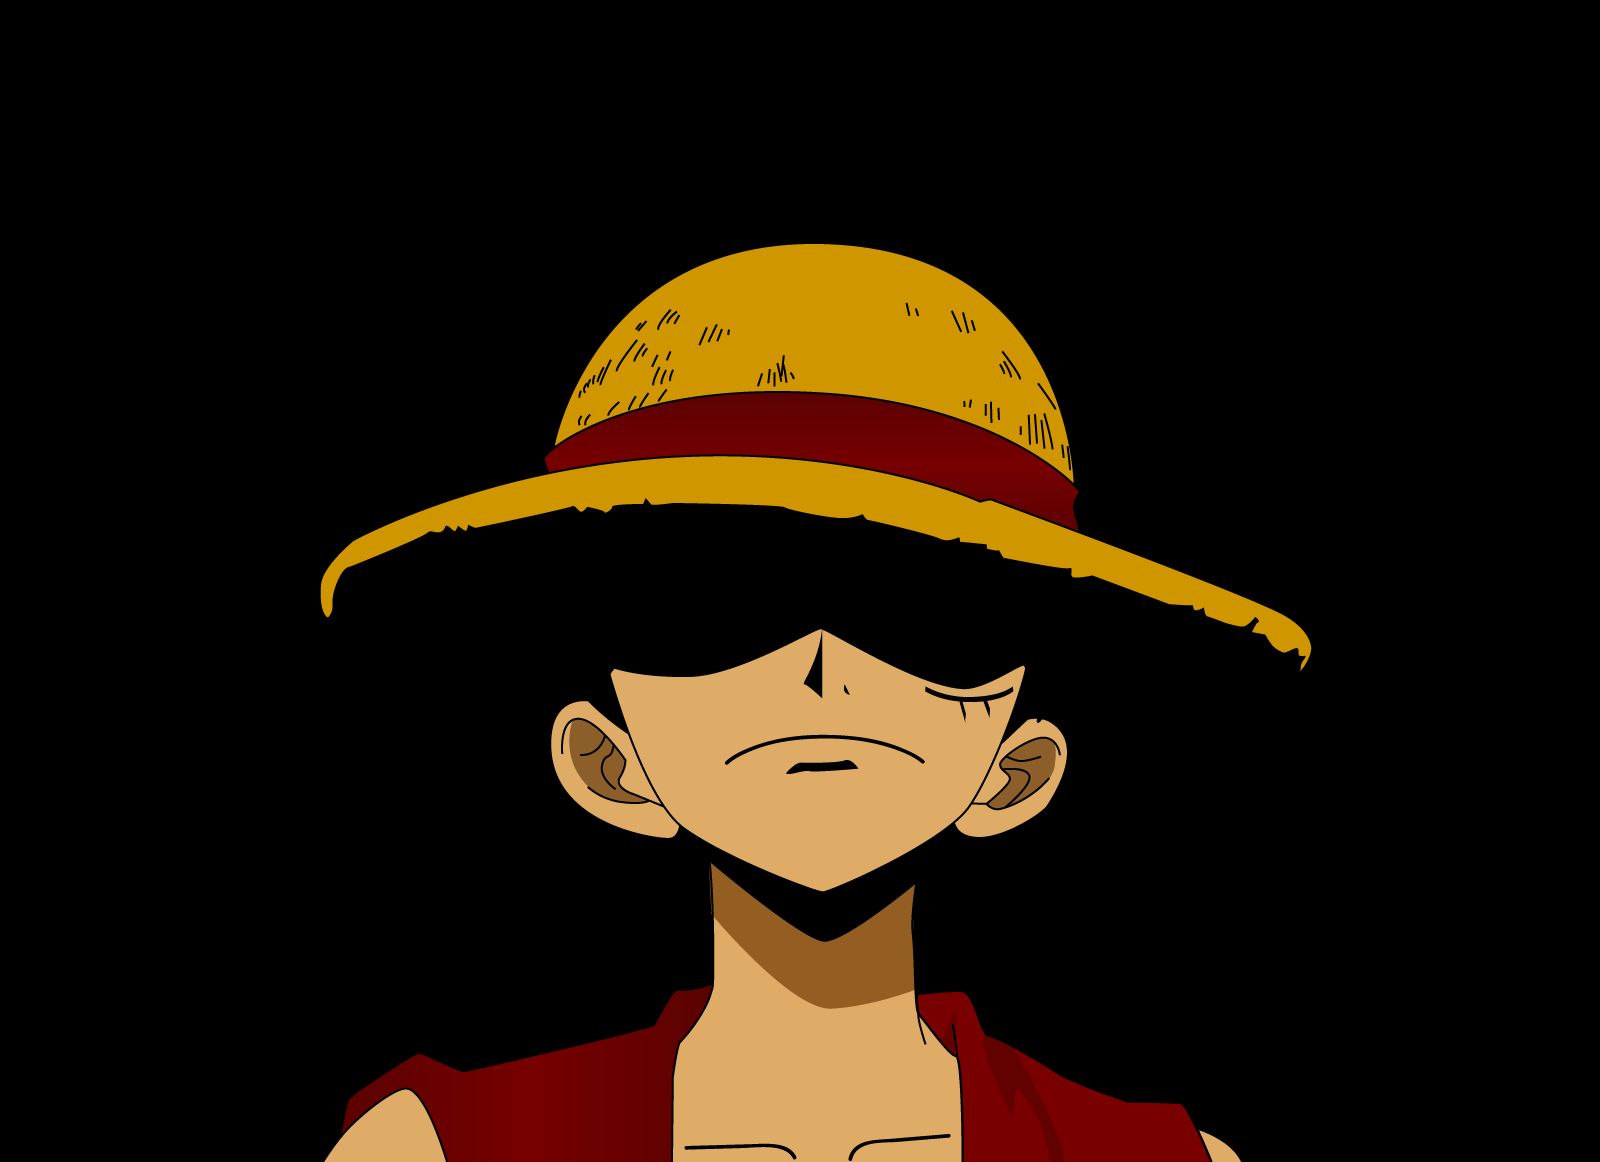 Wallpapers One Piece Luffy Group 85